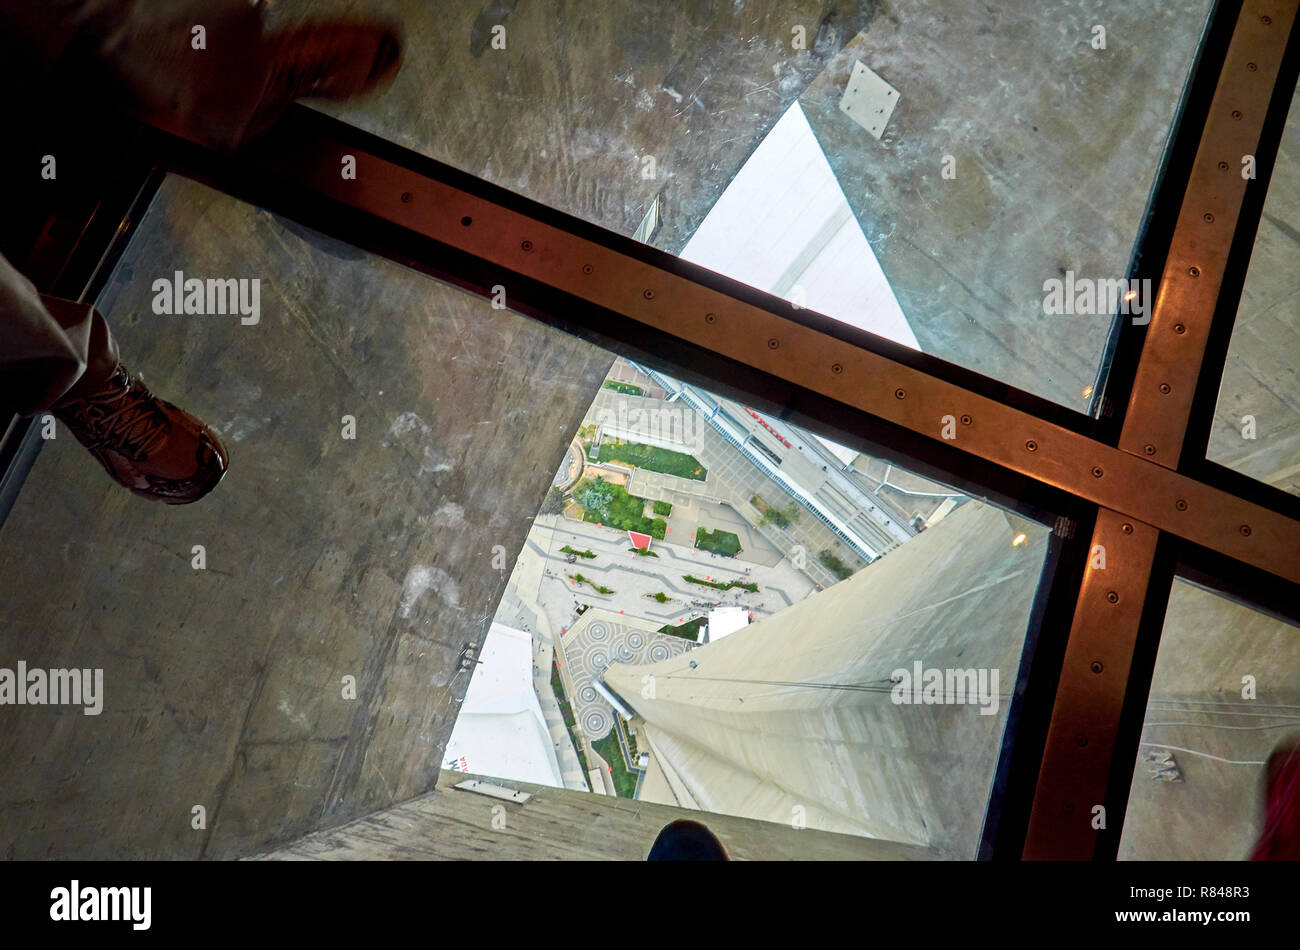 Man S Feet On The Glass Floor Of The Cn Tower 350 Meters Above